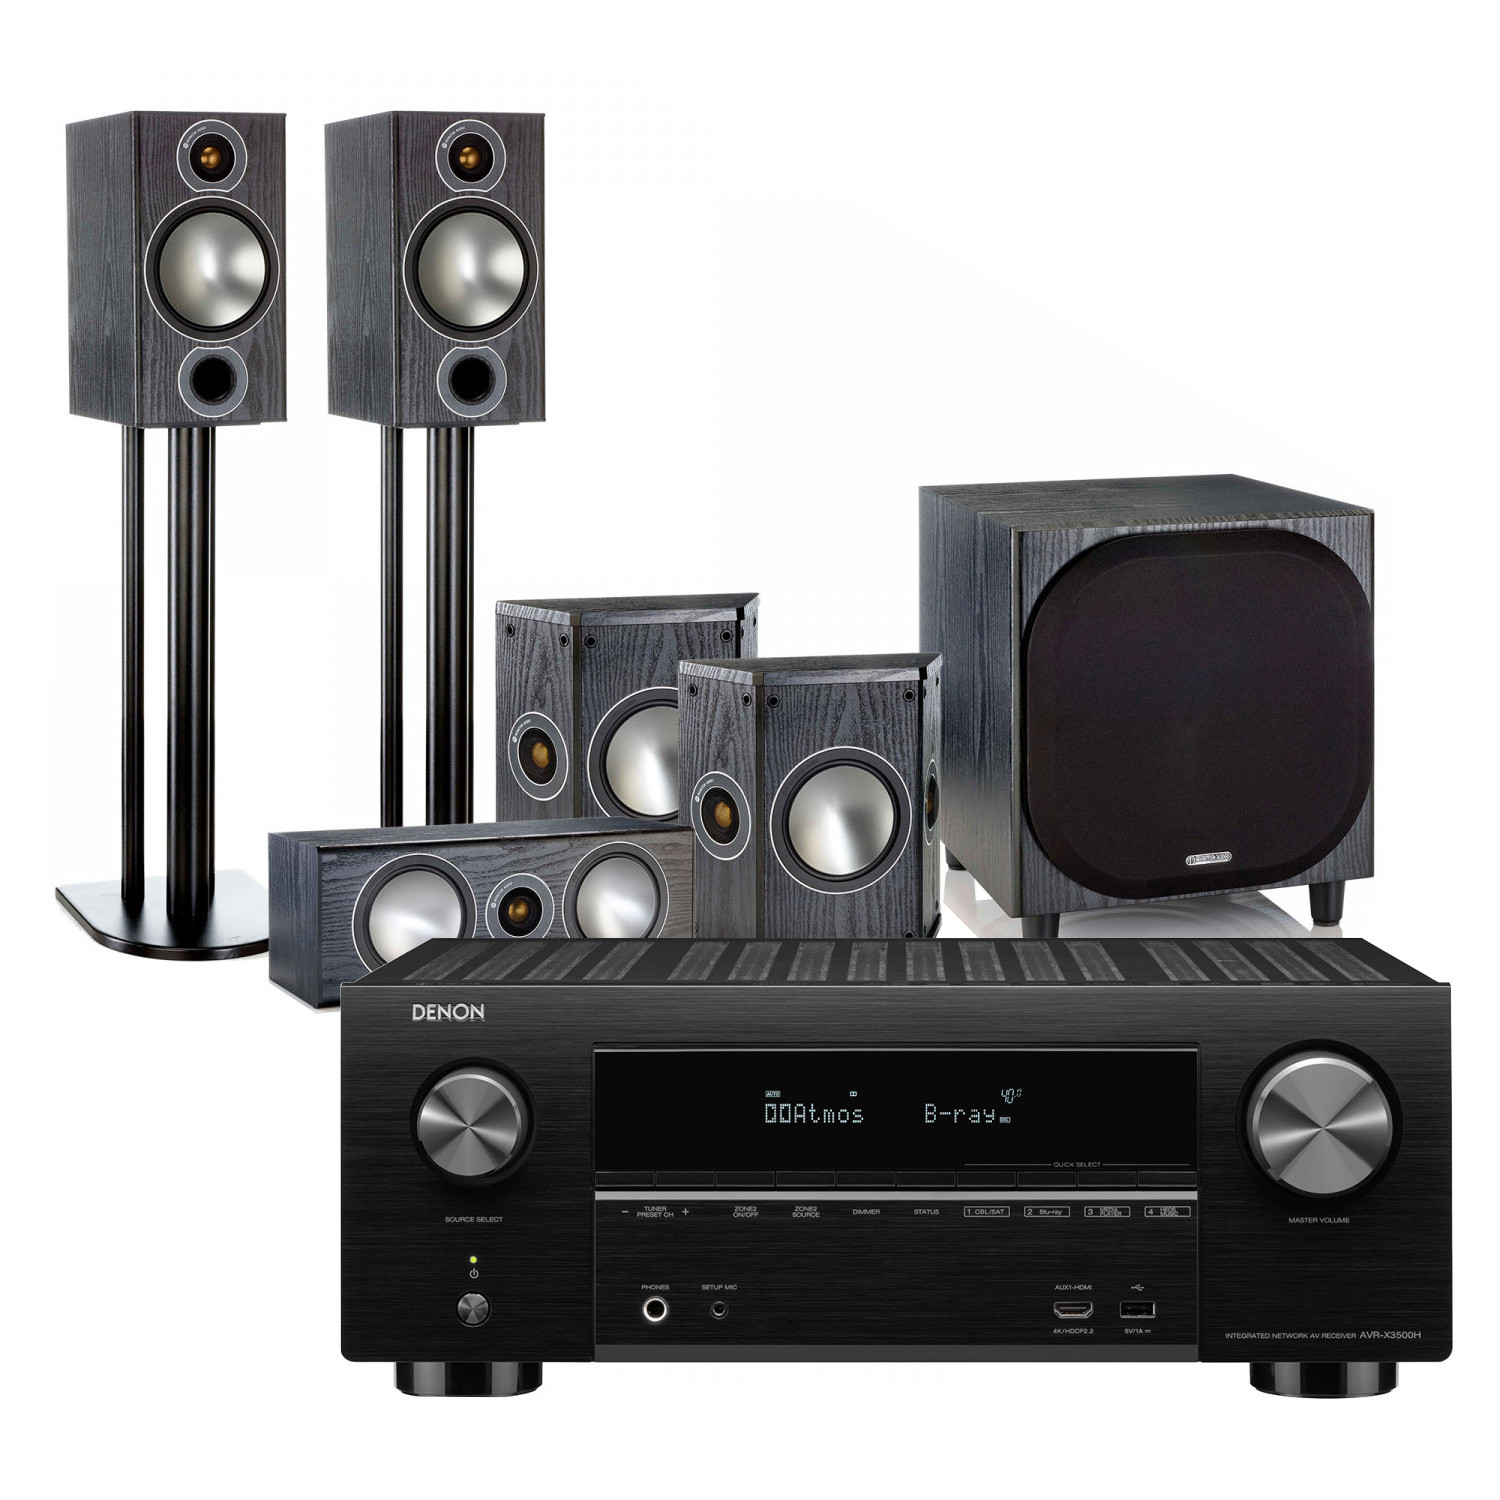 Denon AVR-X3500H 7 2 Channel AV Receiver with Monitor Audio Bronze 2